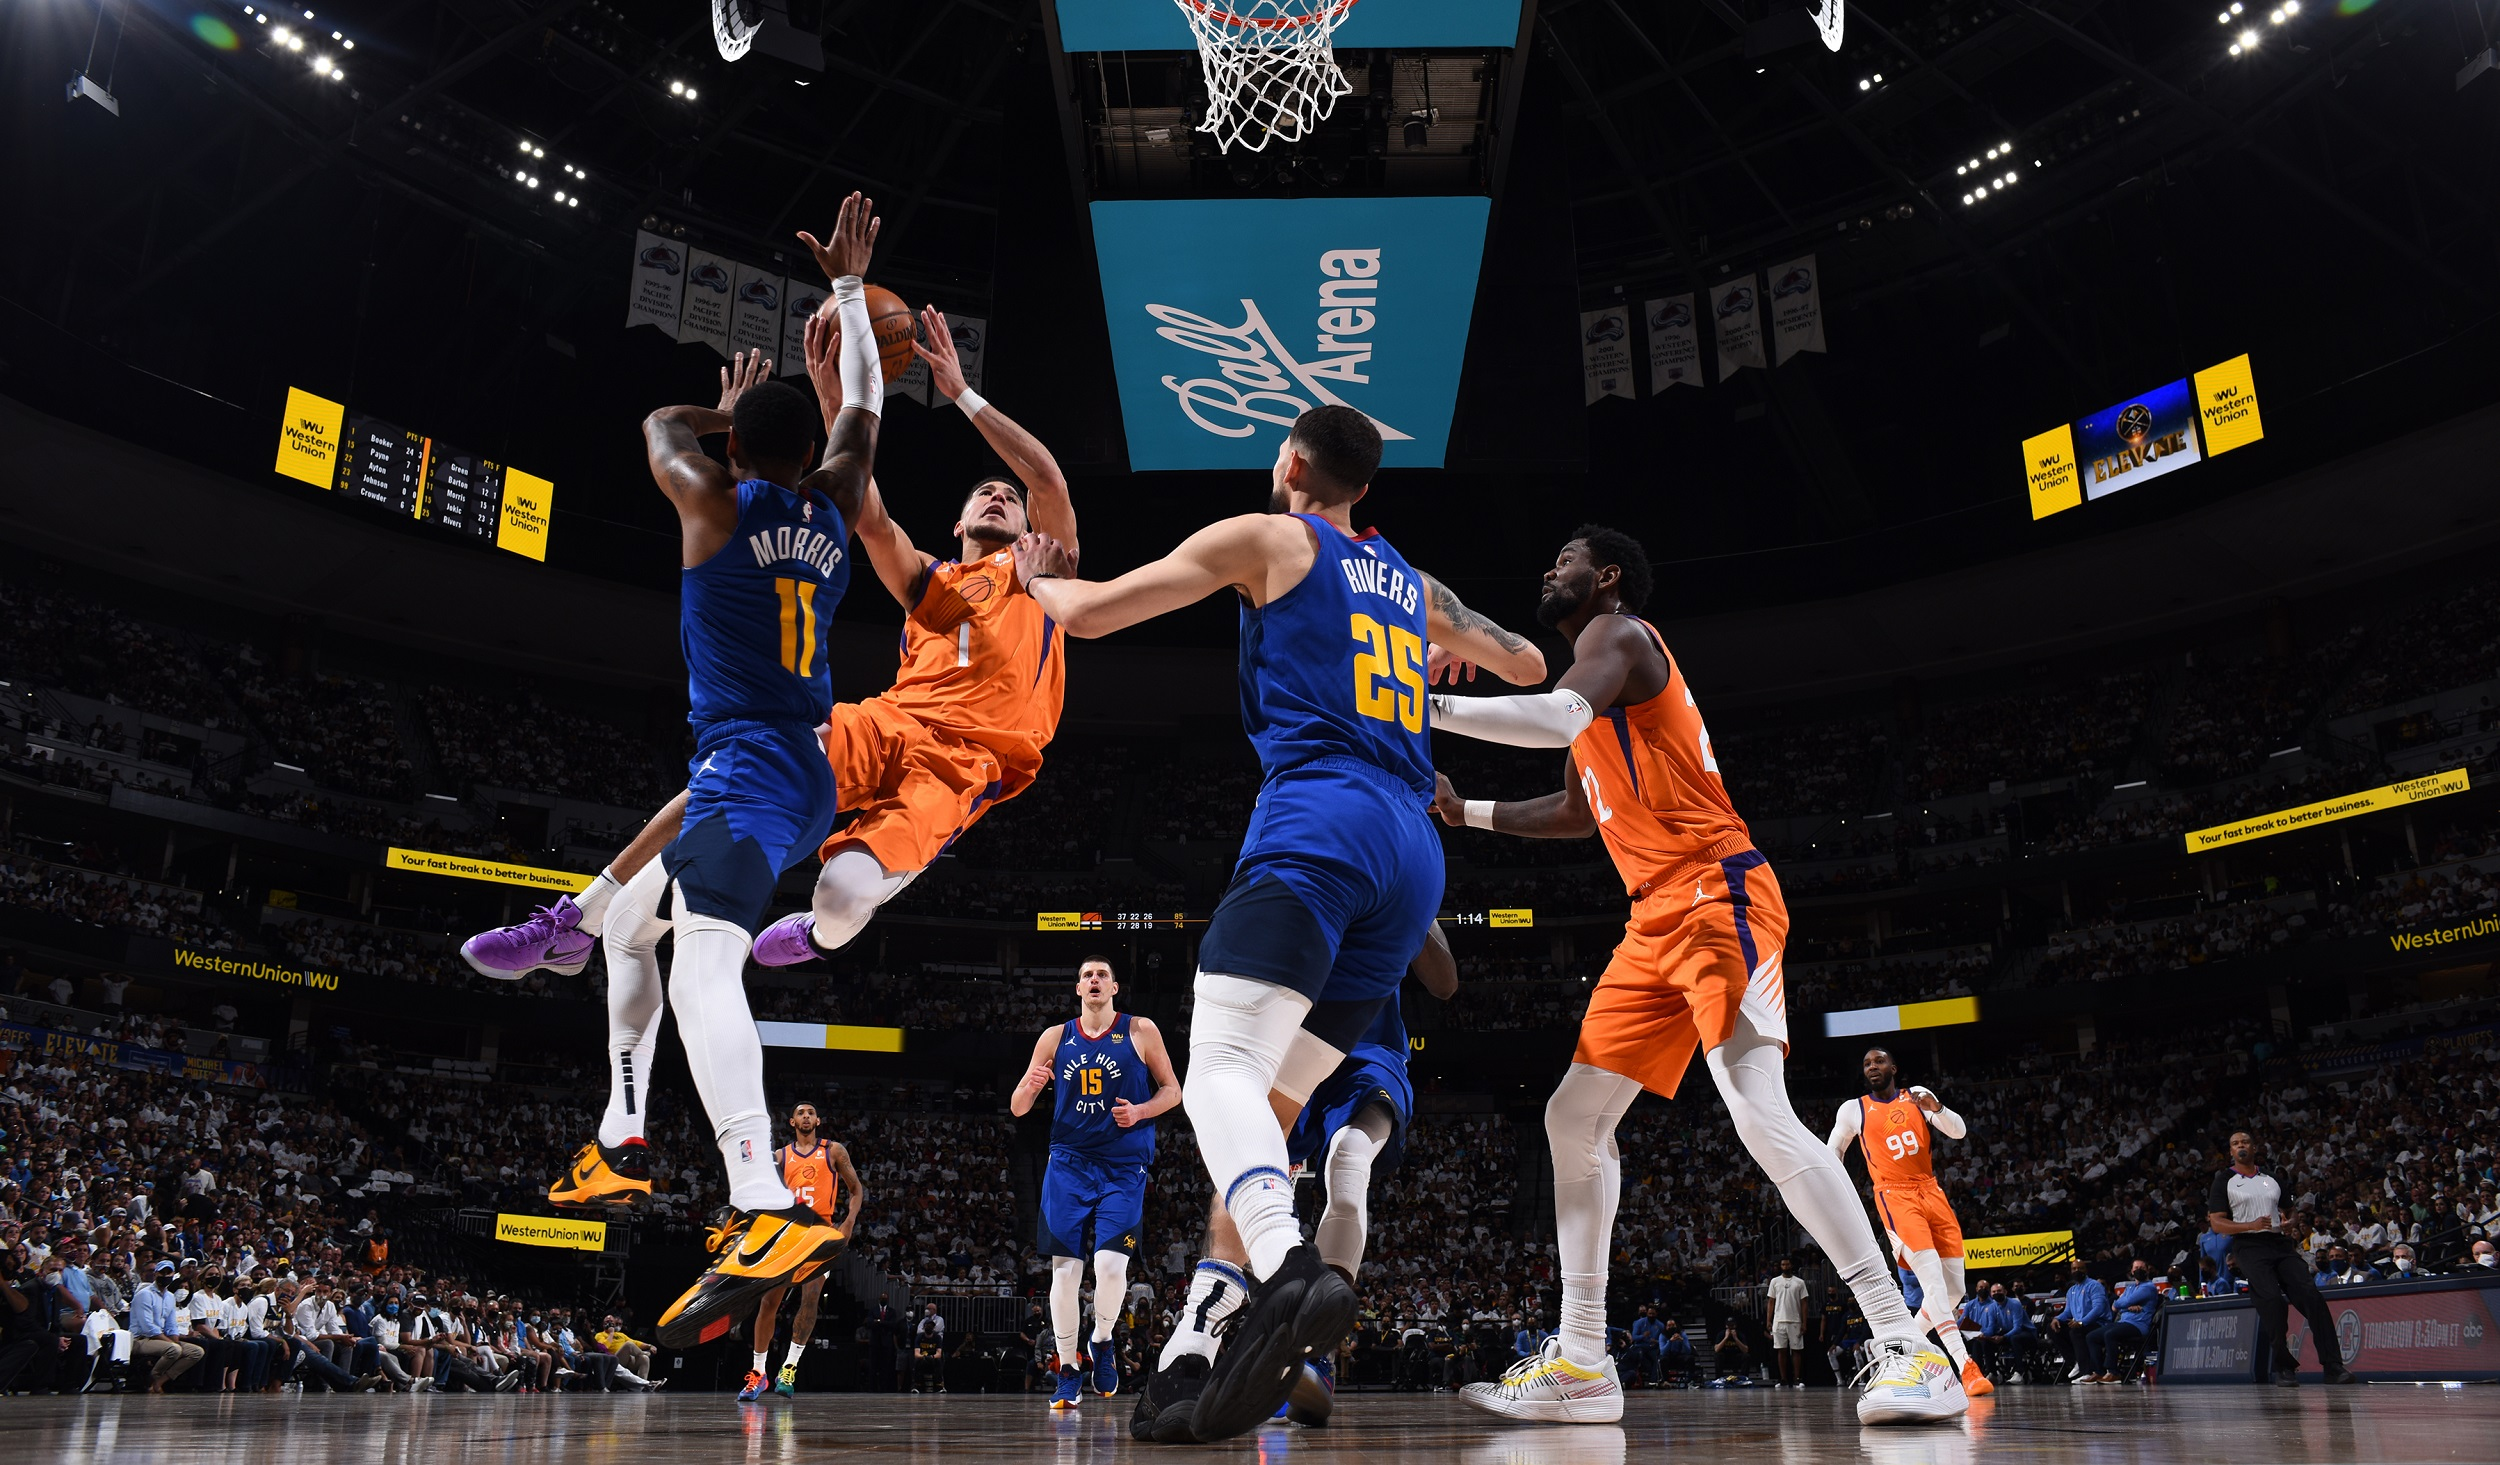 Suns dominate Game 3 to take commanding 3-0 lead